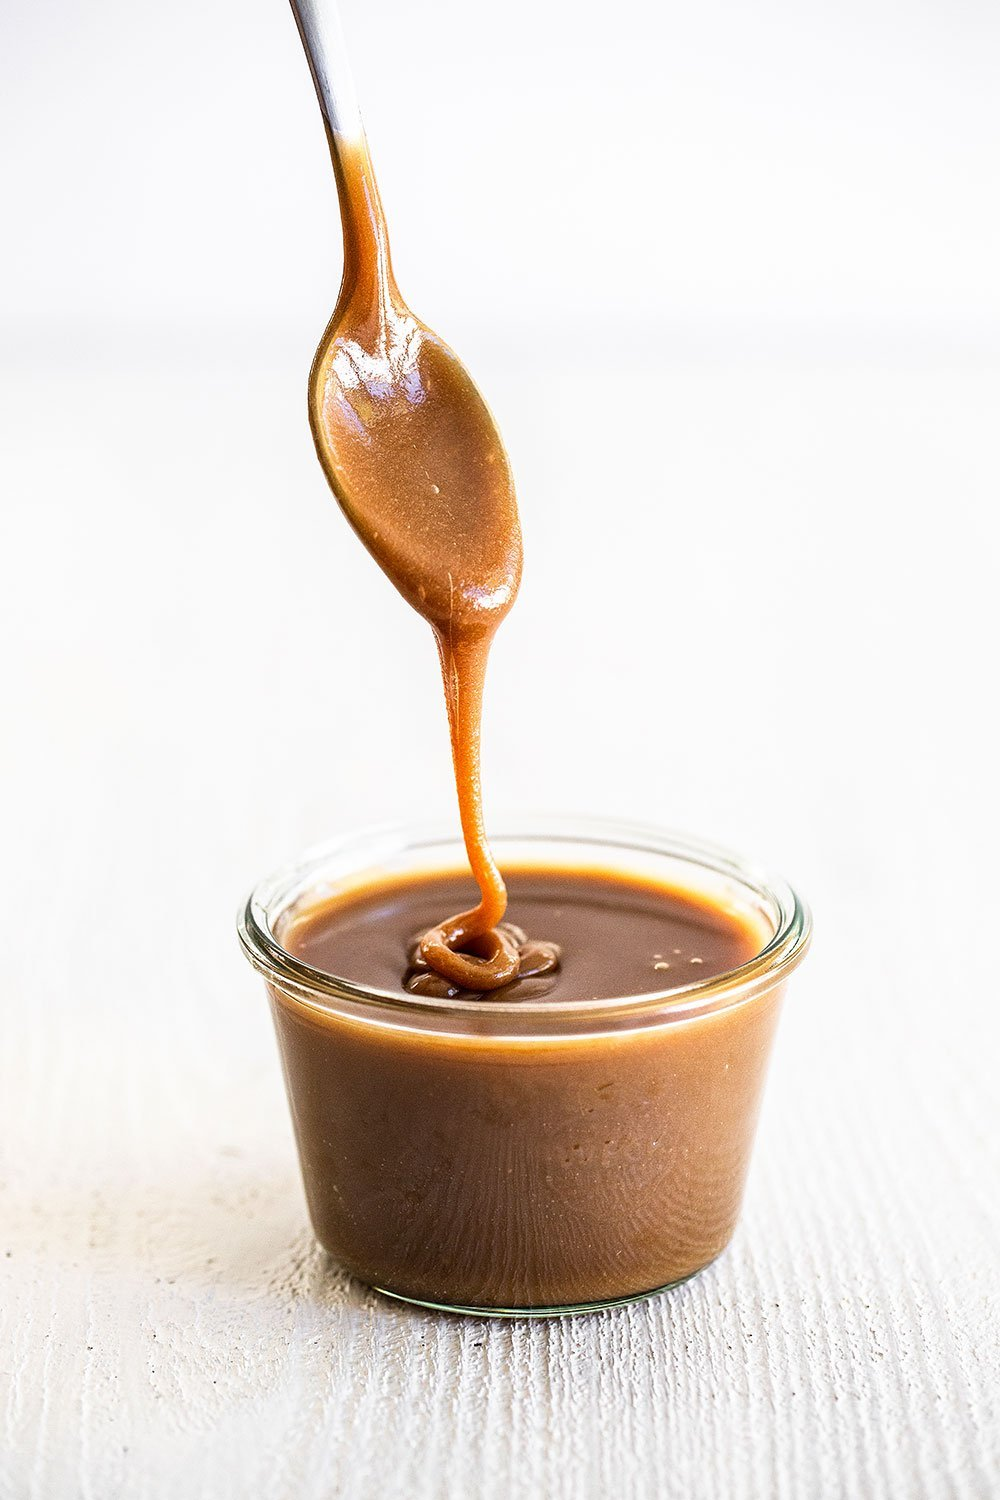 Butterscotch sauce in a jar with a spoon